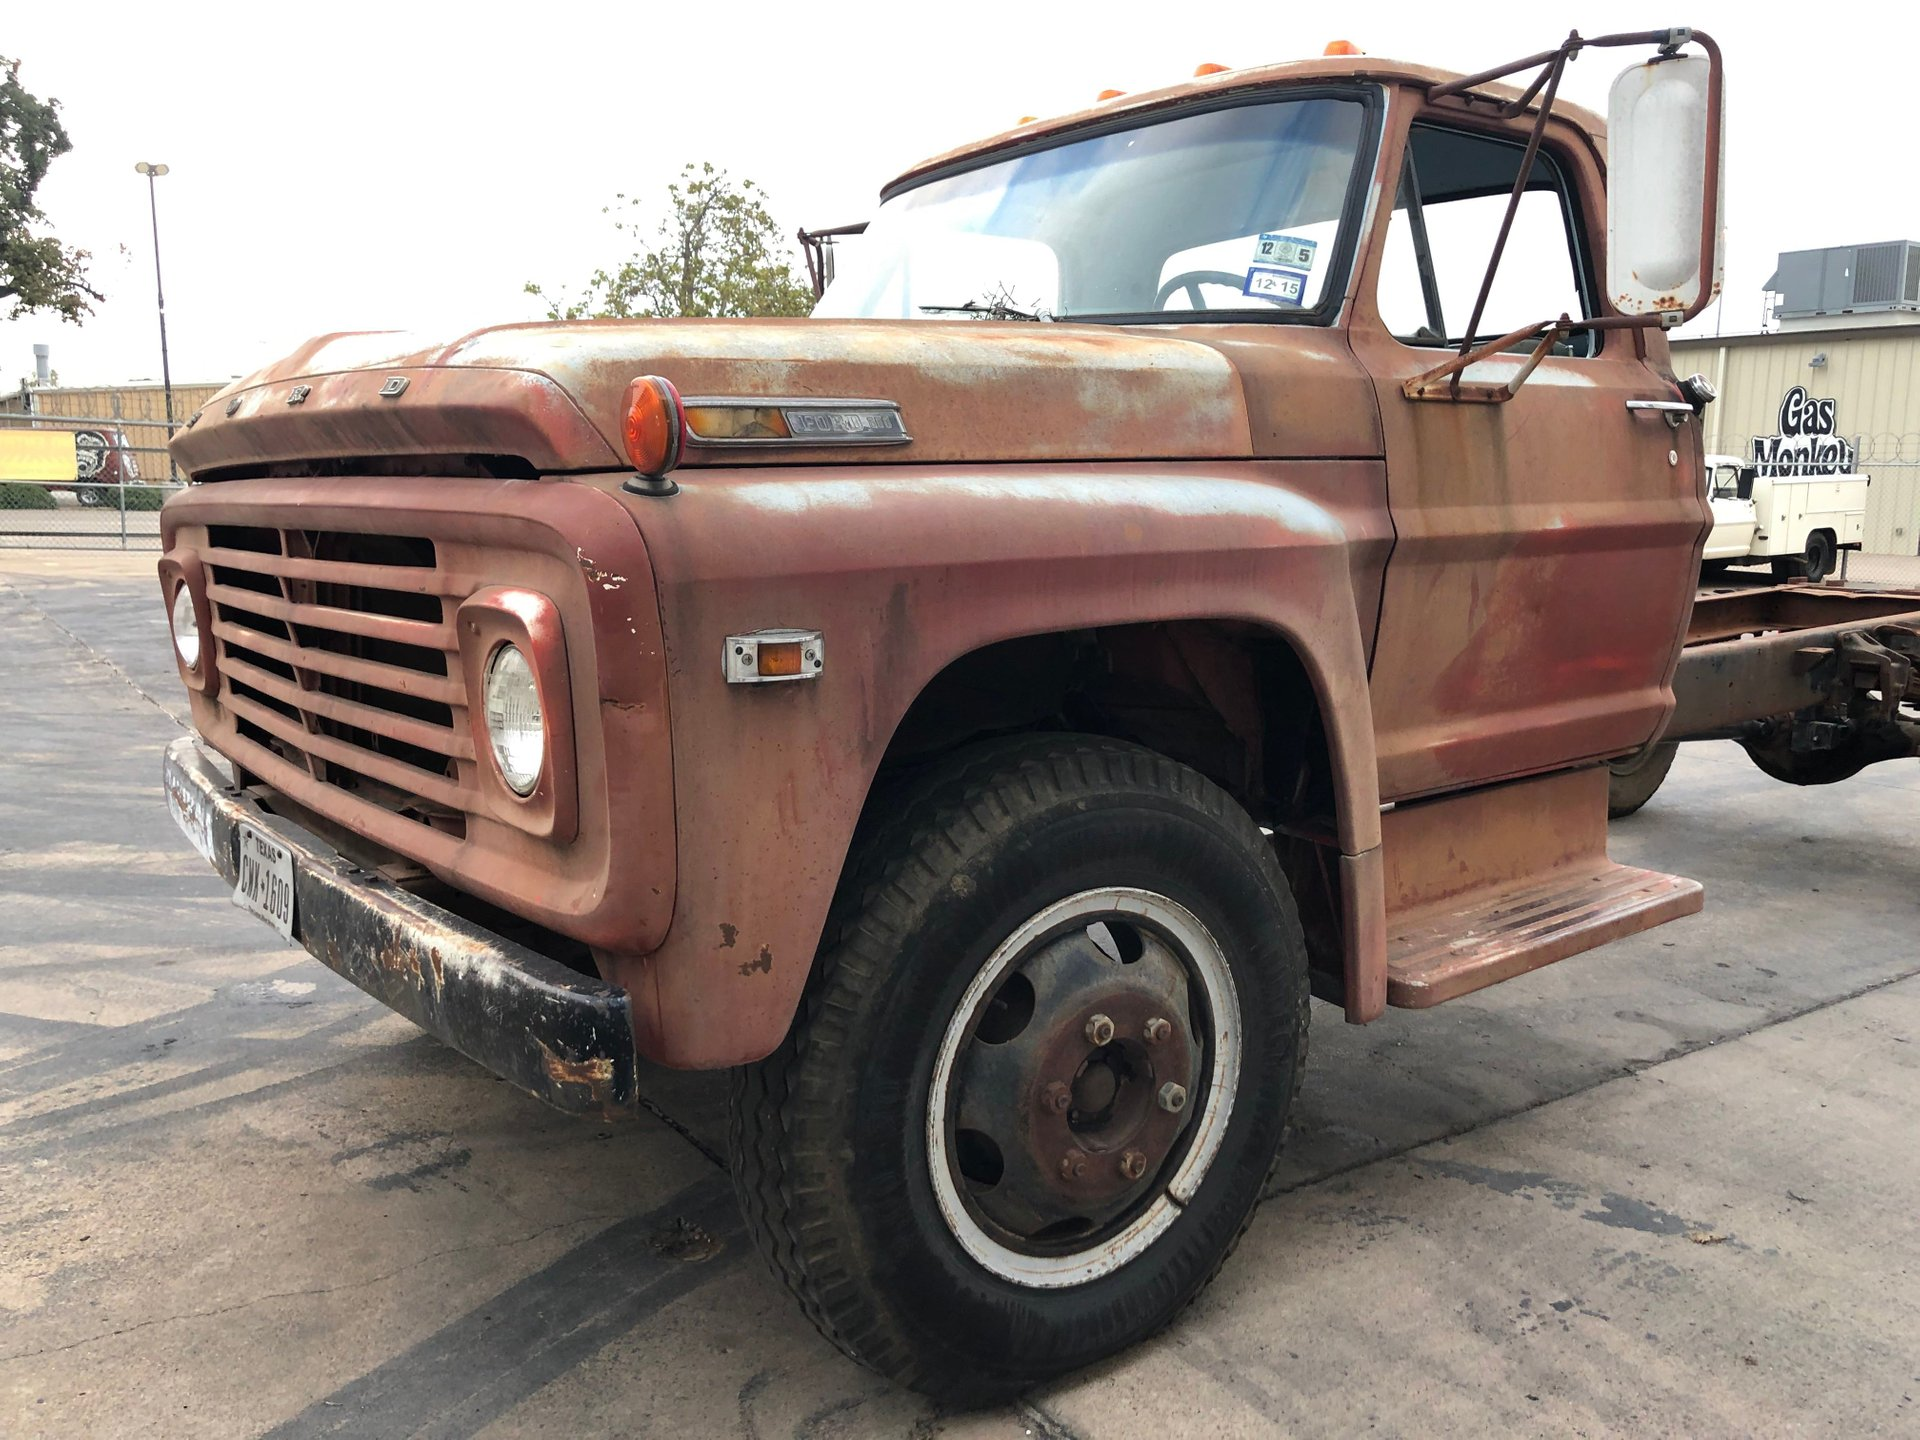 1969 Ford F600 Gas Monkey Garage